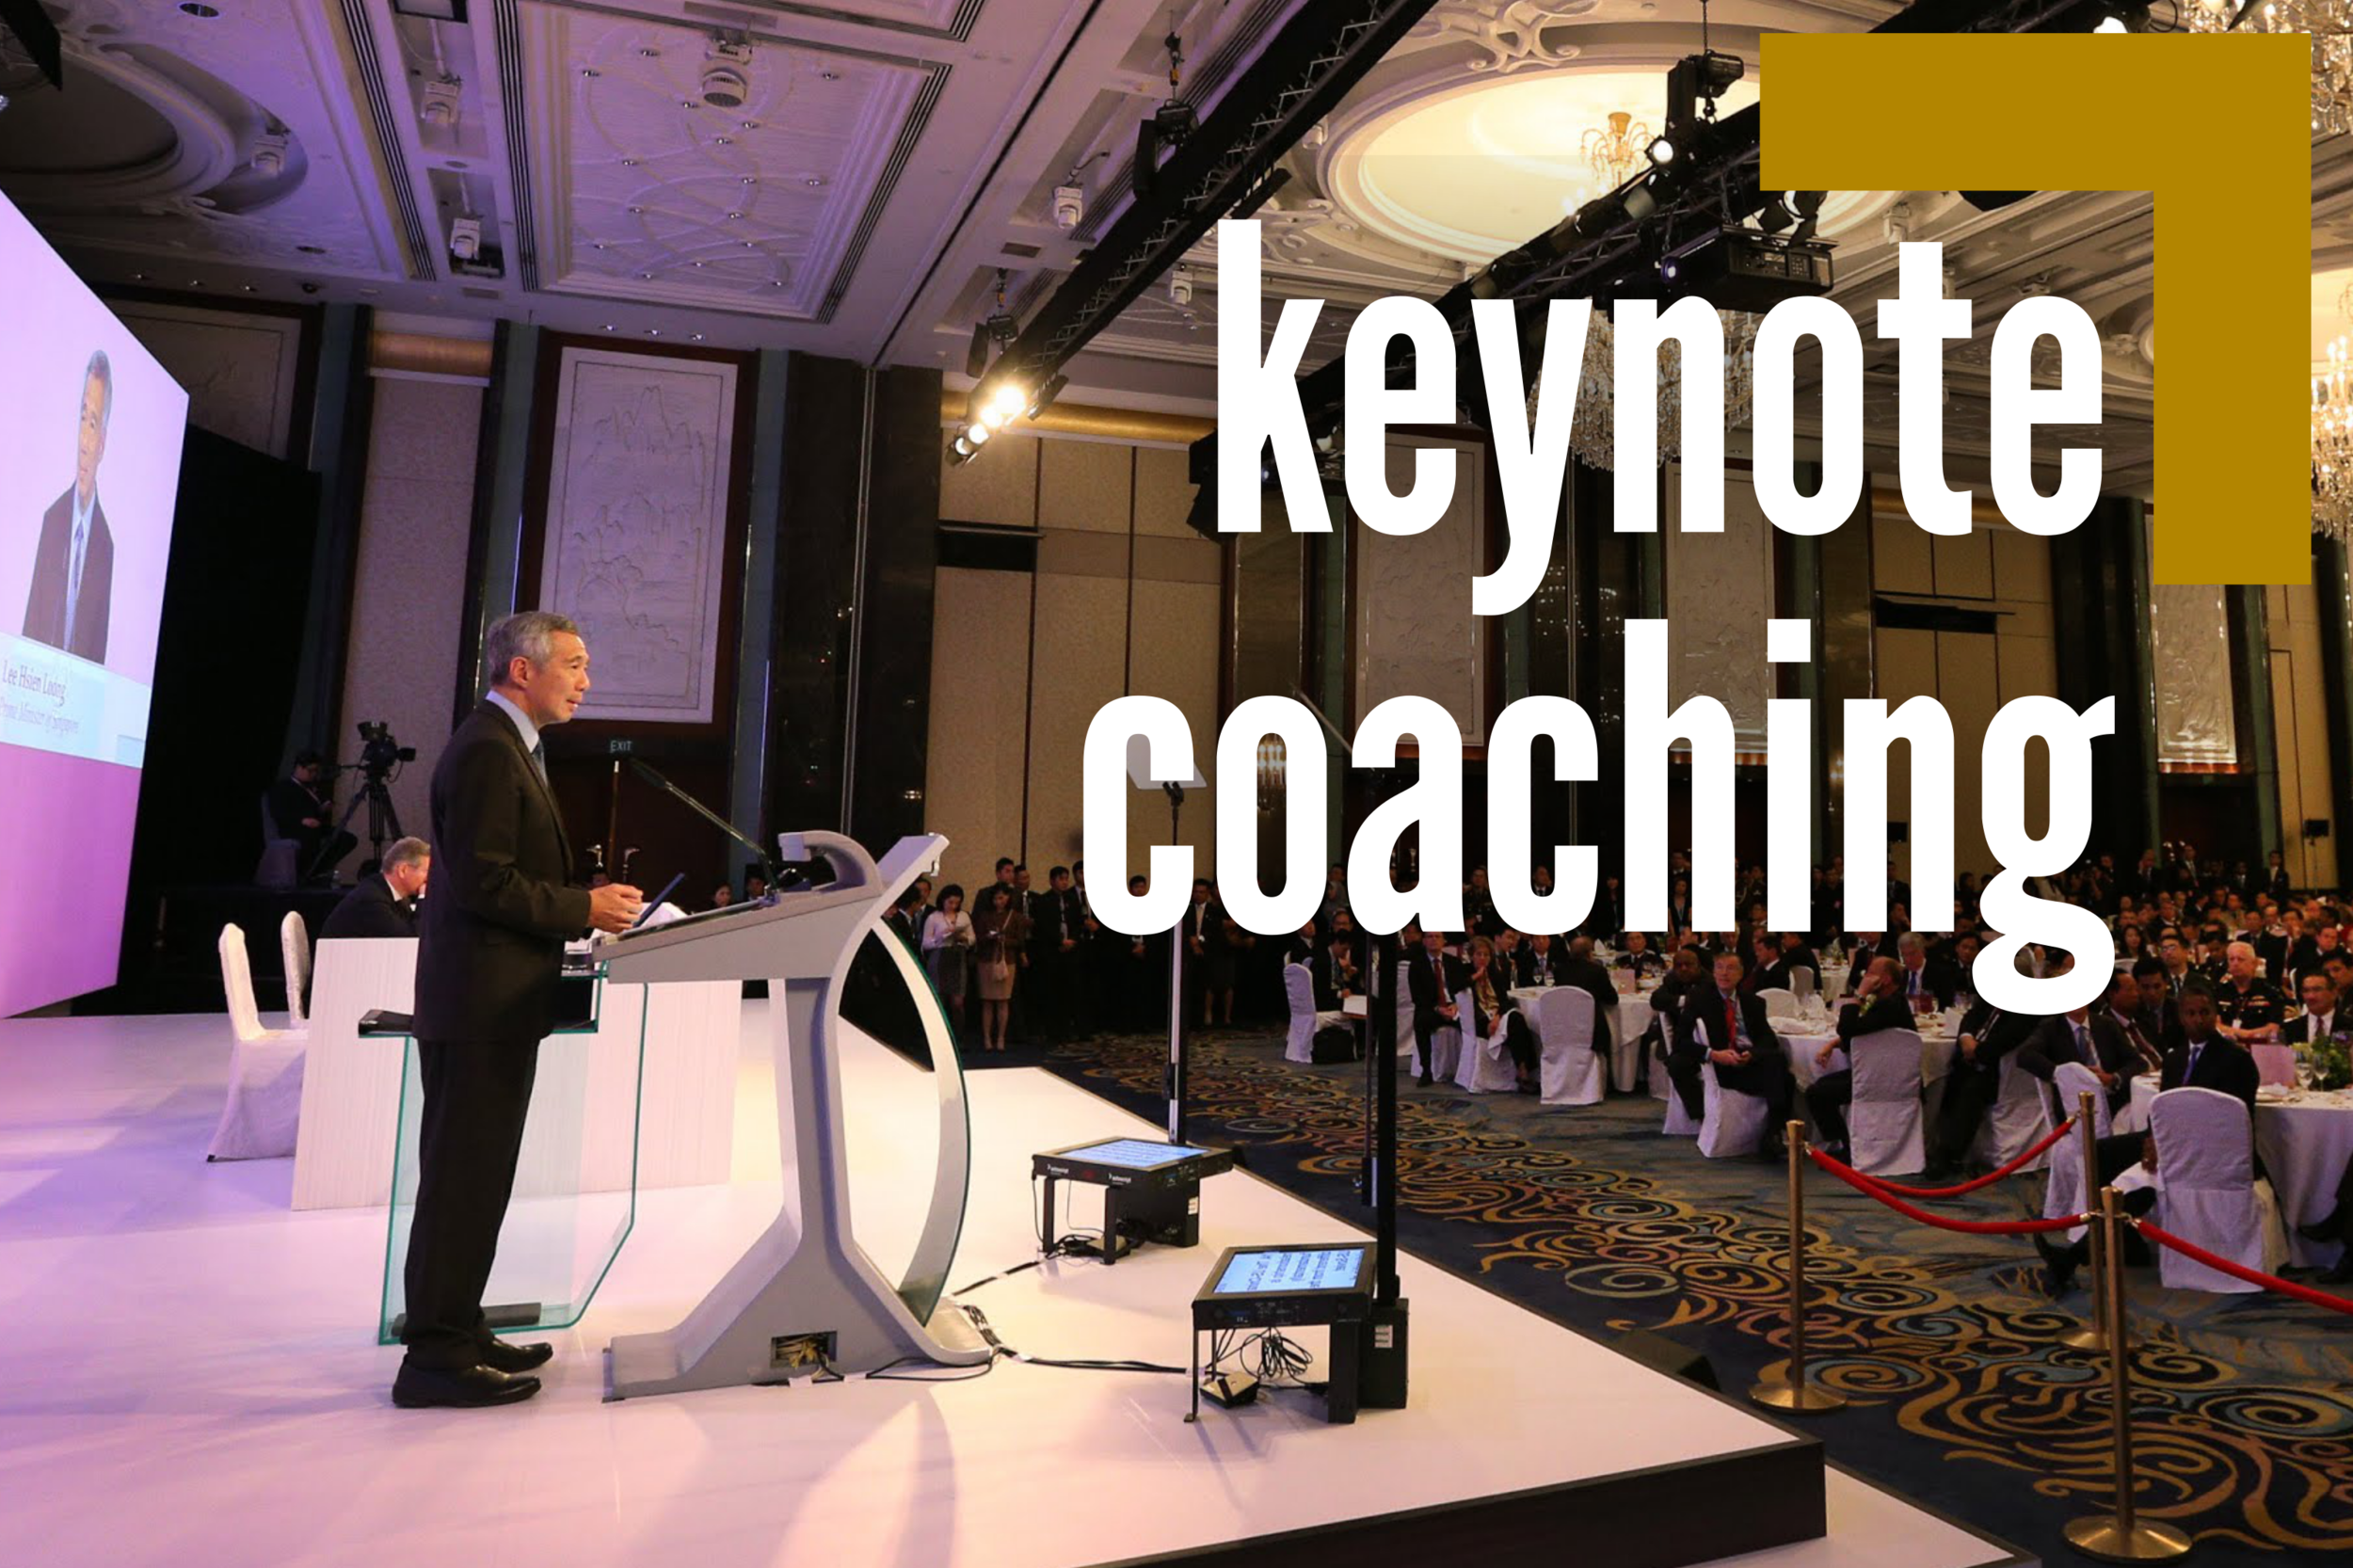 CLICK TO FIND OUT MORE ABOUT GETTING KEYNOTE COACHING TO WRITE YOUR NEXT SPEECH, PITCH OR PRESENTATION... with lots of other stuff  bcuydiwo  byowcq byoubou